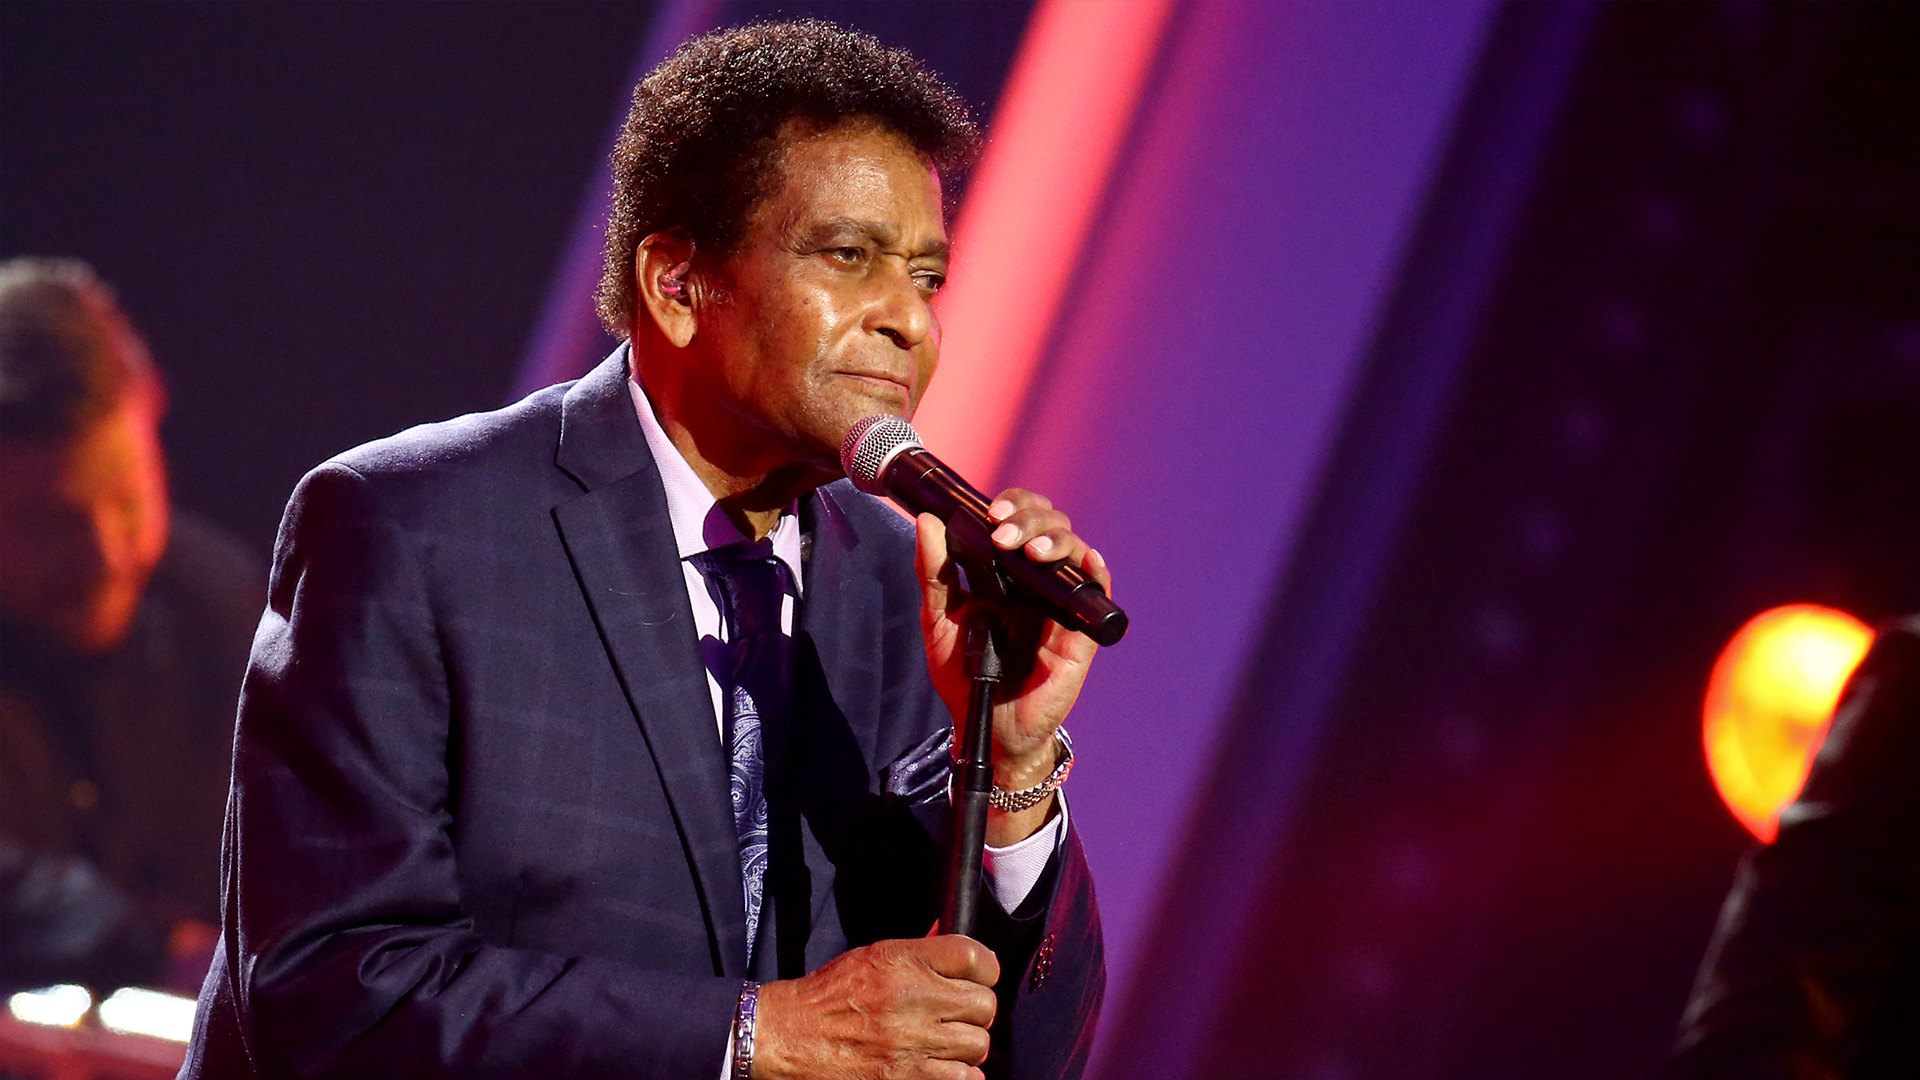 Country music legend Charley Pride dies at 86 in Dallas from Covid-19 6